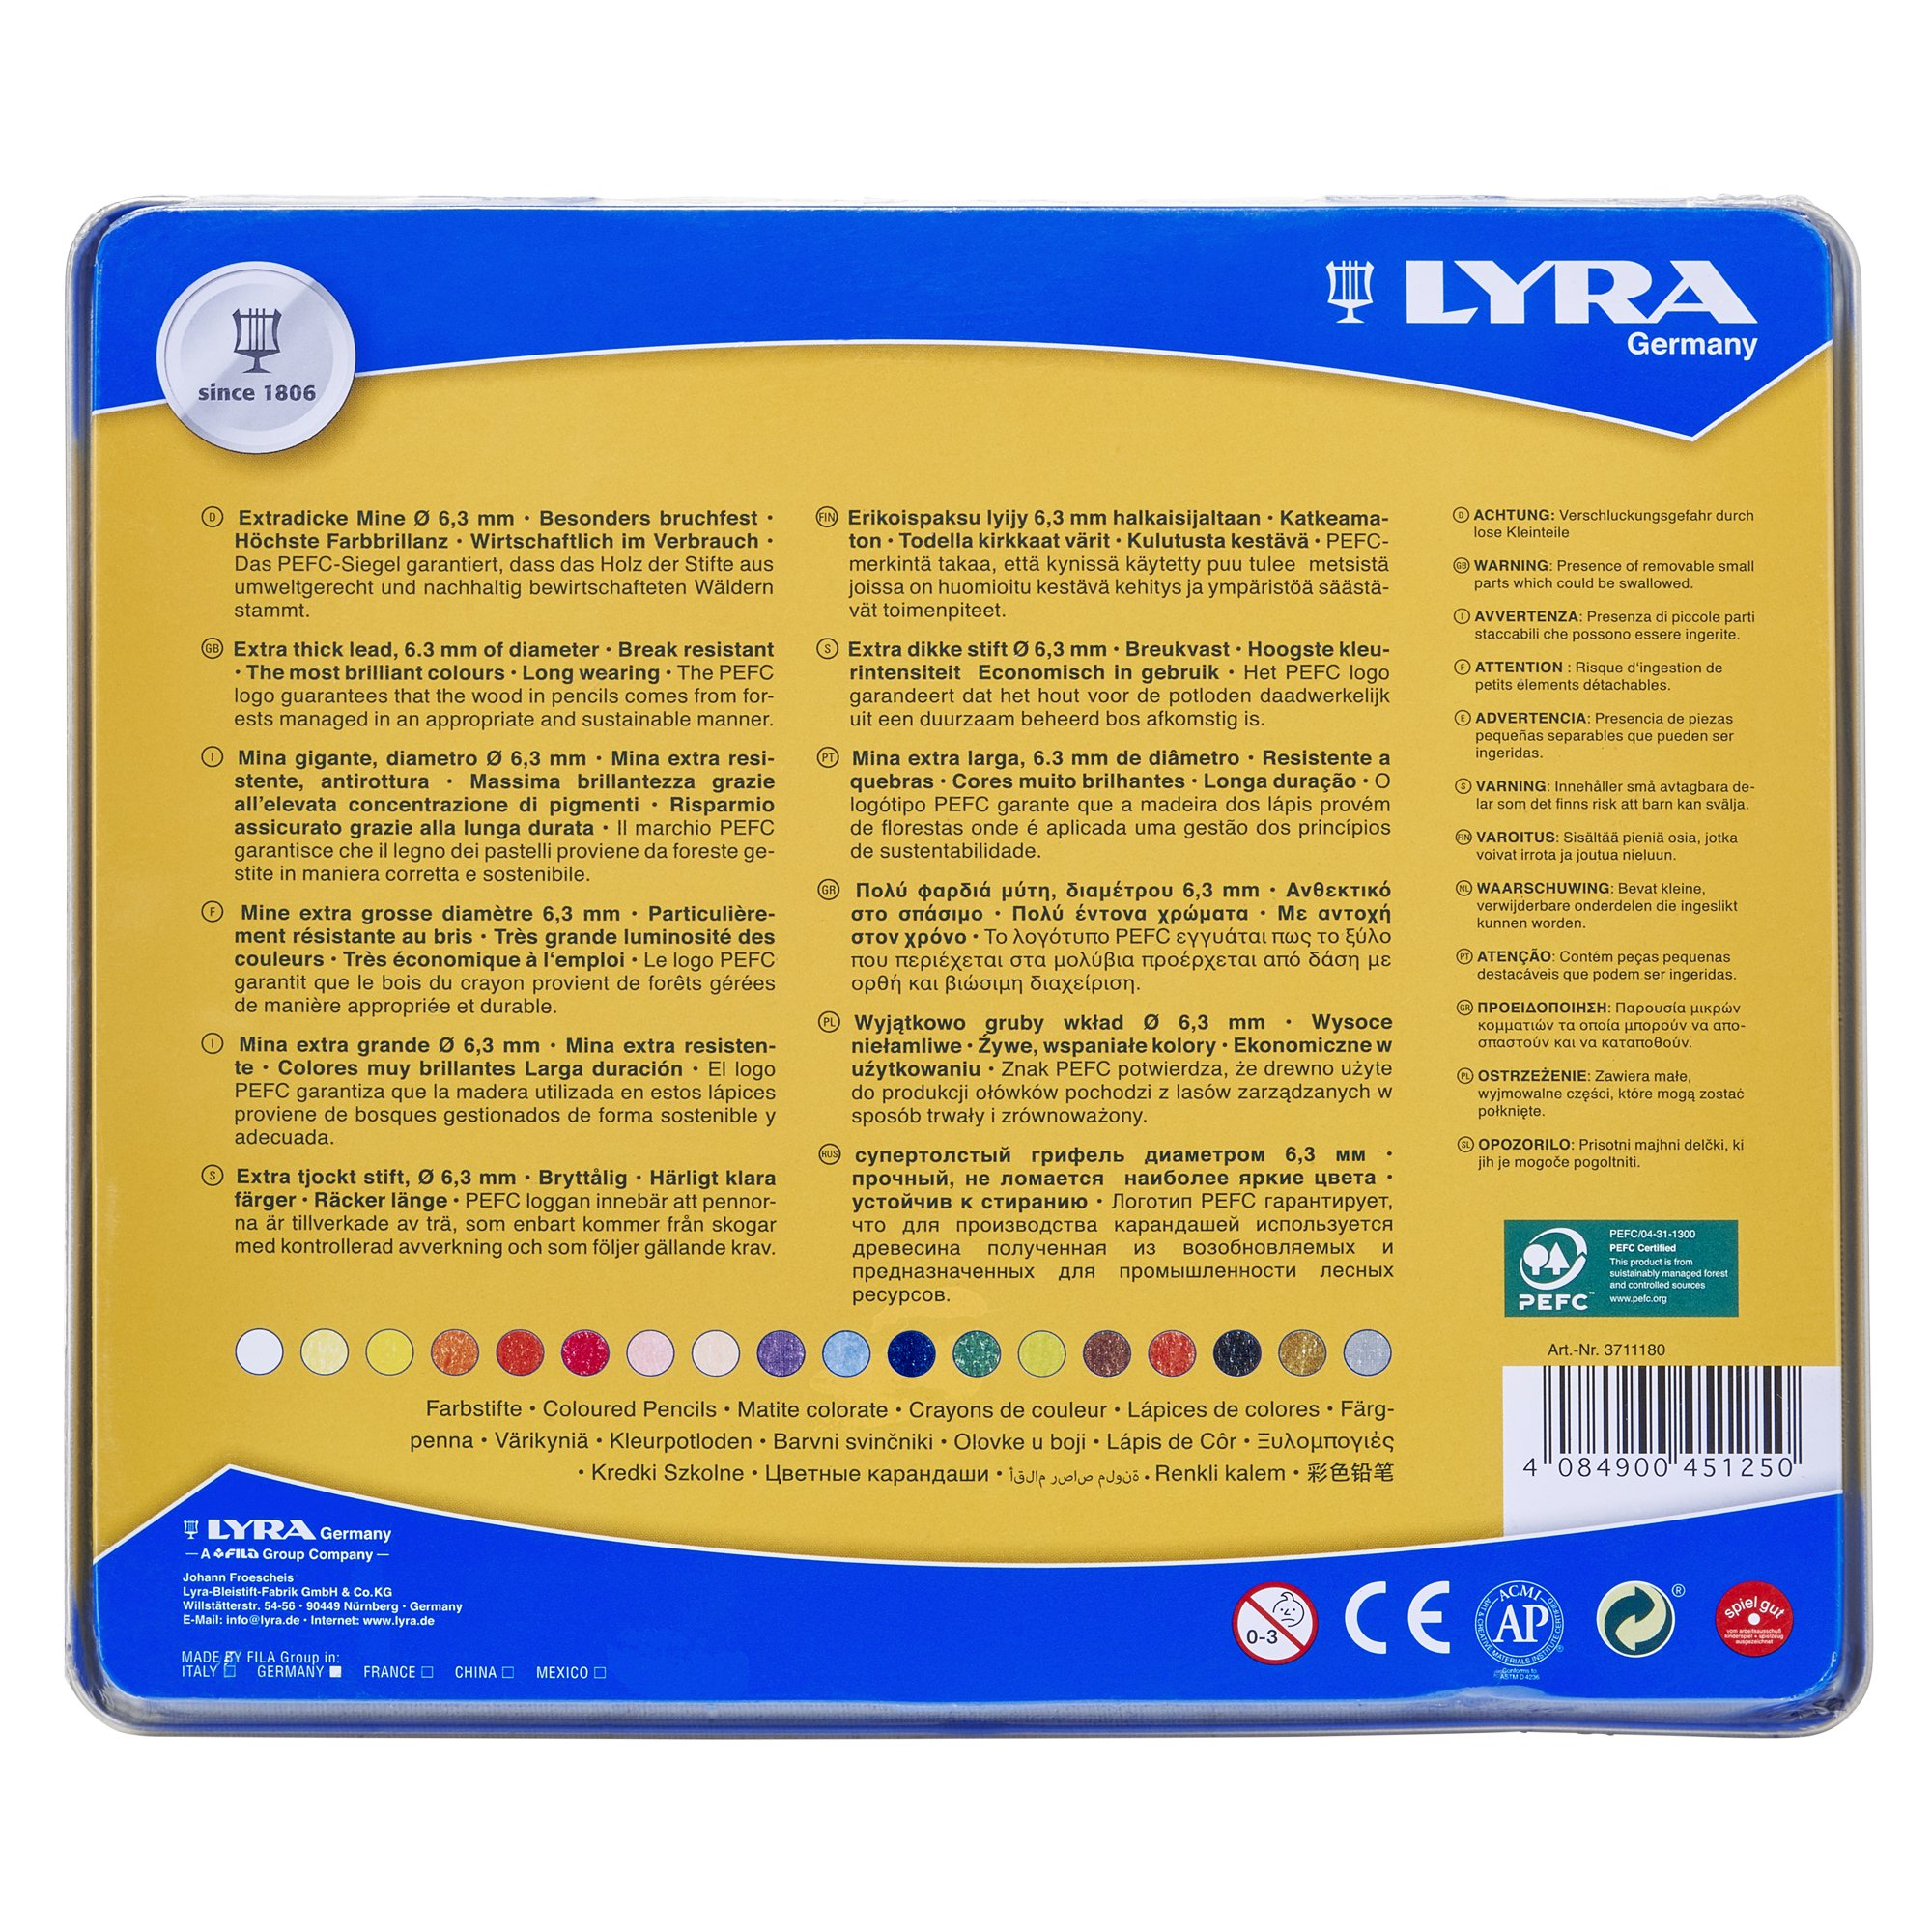 LYRA Super Ferby Giant Triangular Colored Pencil, Unlacquered, 6.25 Millimeter Cores, Assorted Colors, 18-Pack (3711180) by Lyra (Image #3)